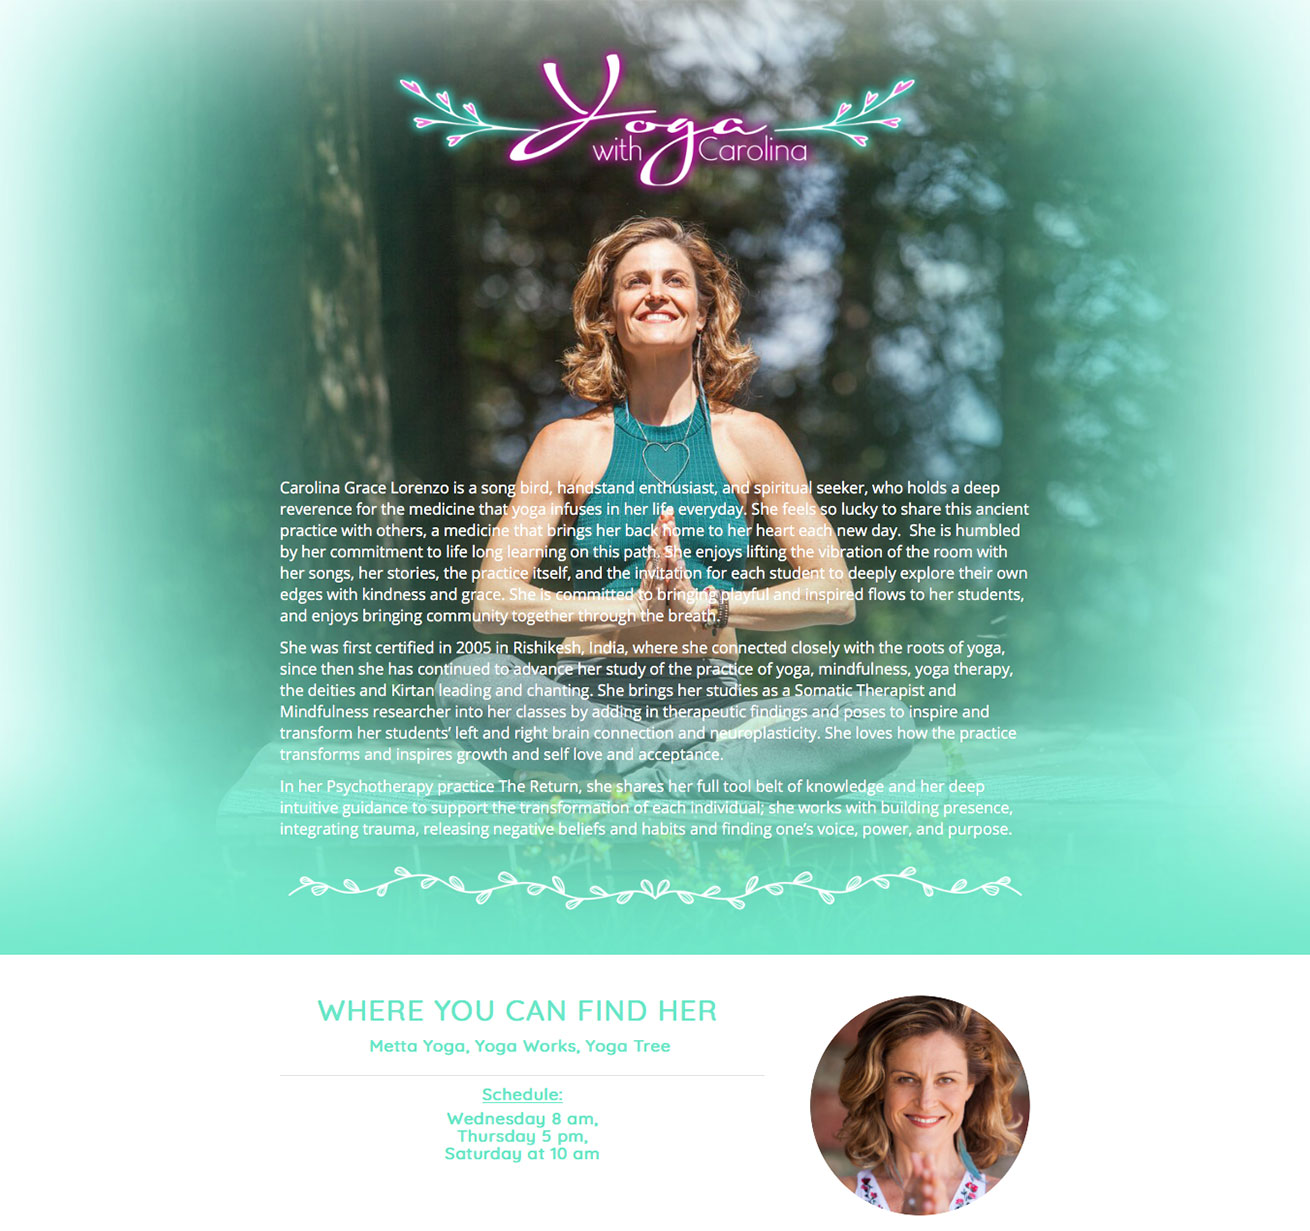 Yoga with Carolina website design